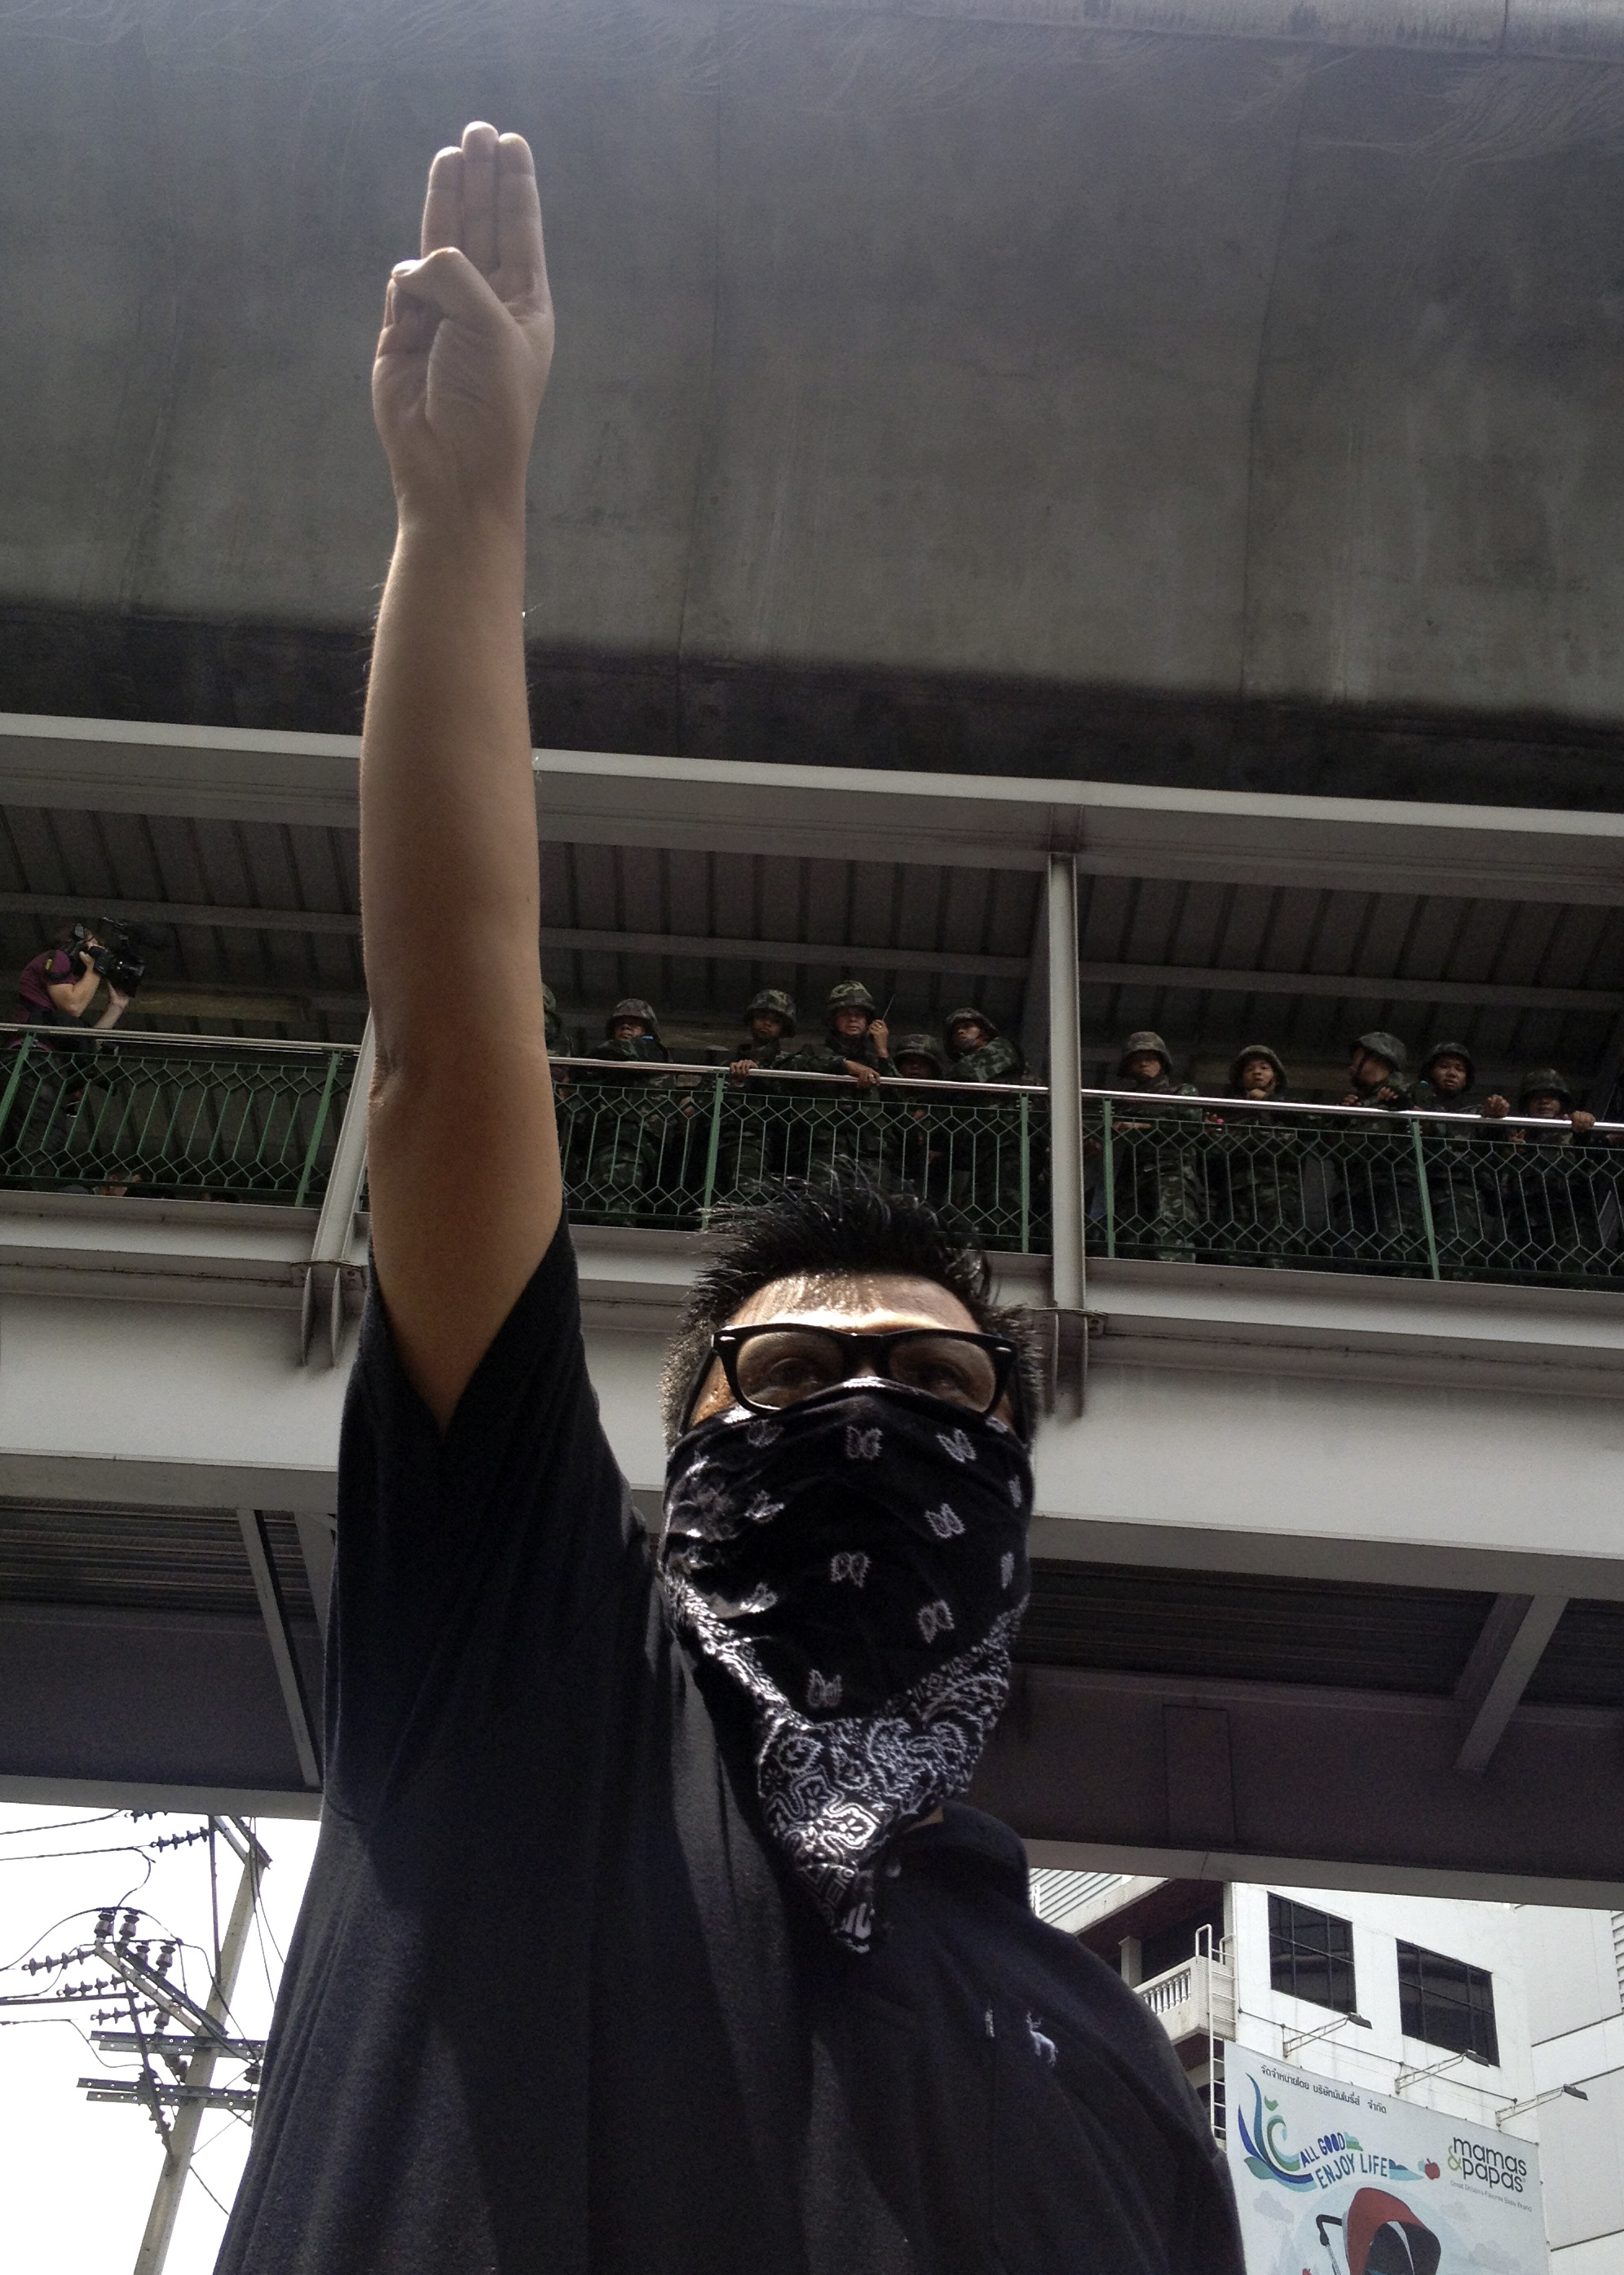 An anticoup protester gives a three-finger salute as soldiers keep eyes on him from an elevated walkway near a rally site in central Bangkok on June 1, 2014